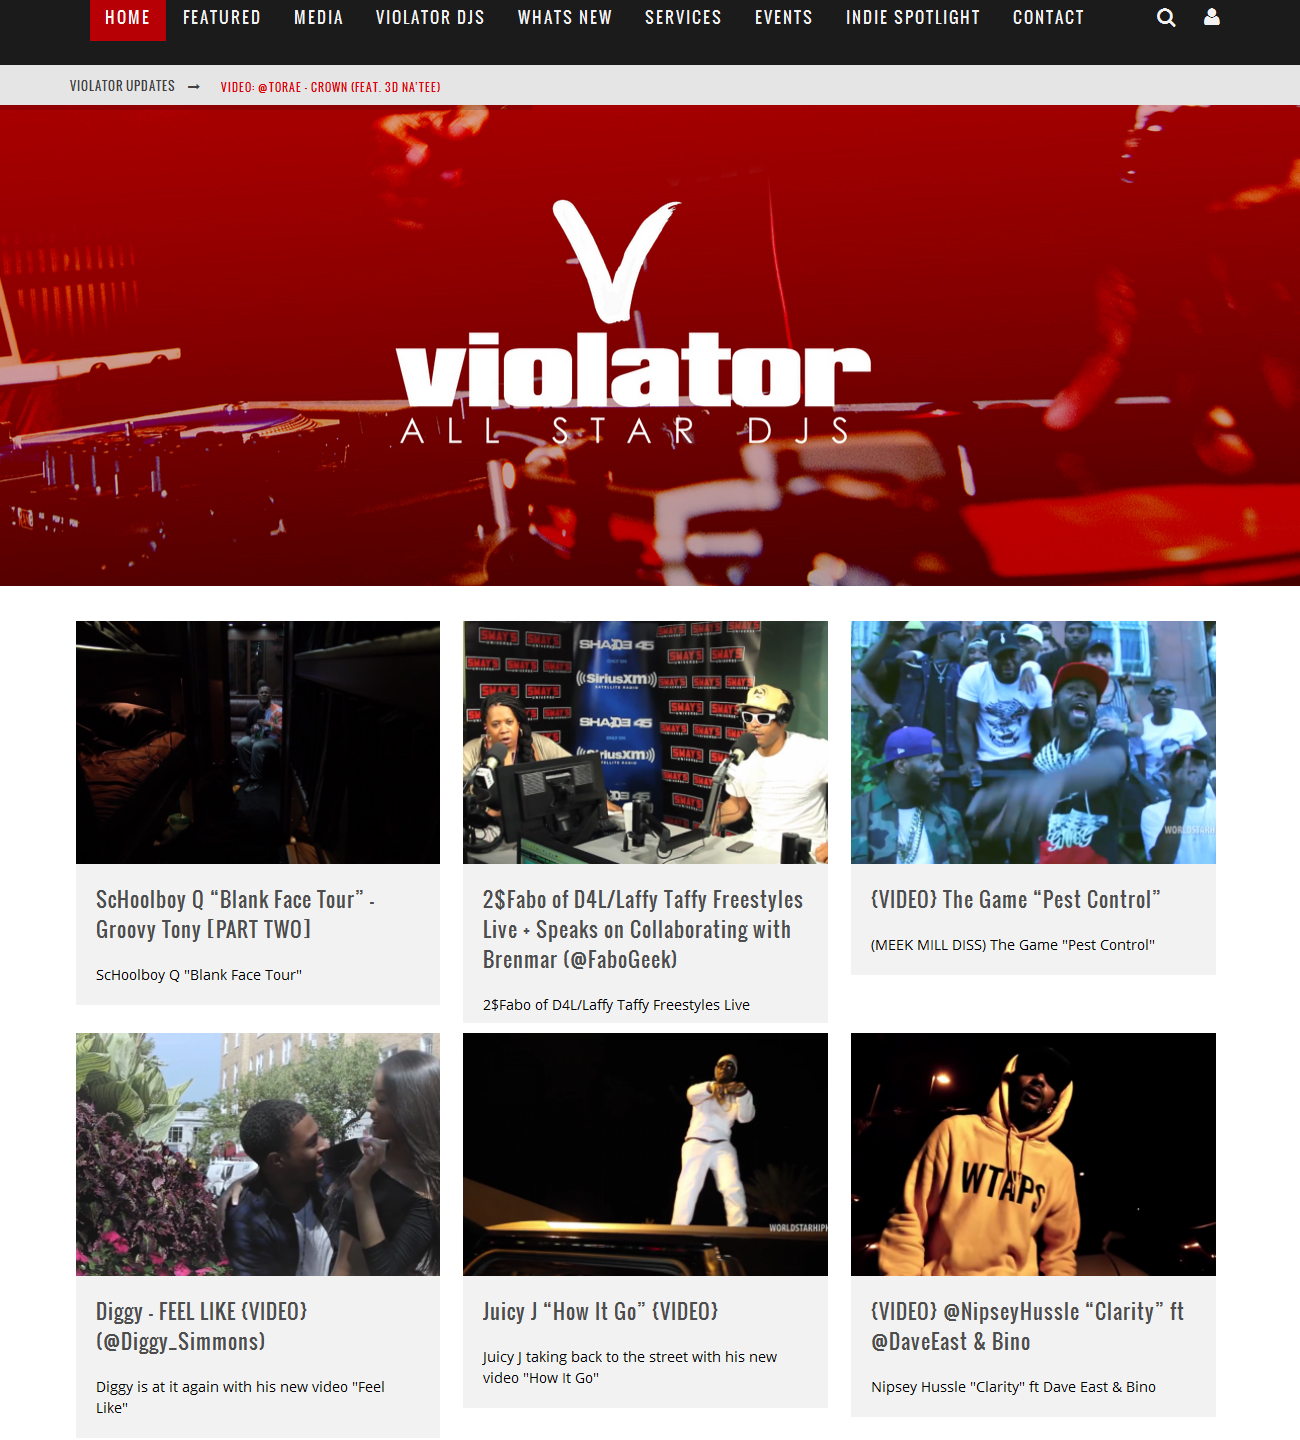 vio ViolatorDJs.com [DJ Scrap Dirty/Chris Lighty]